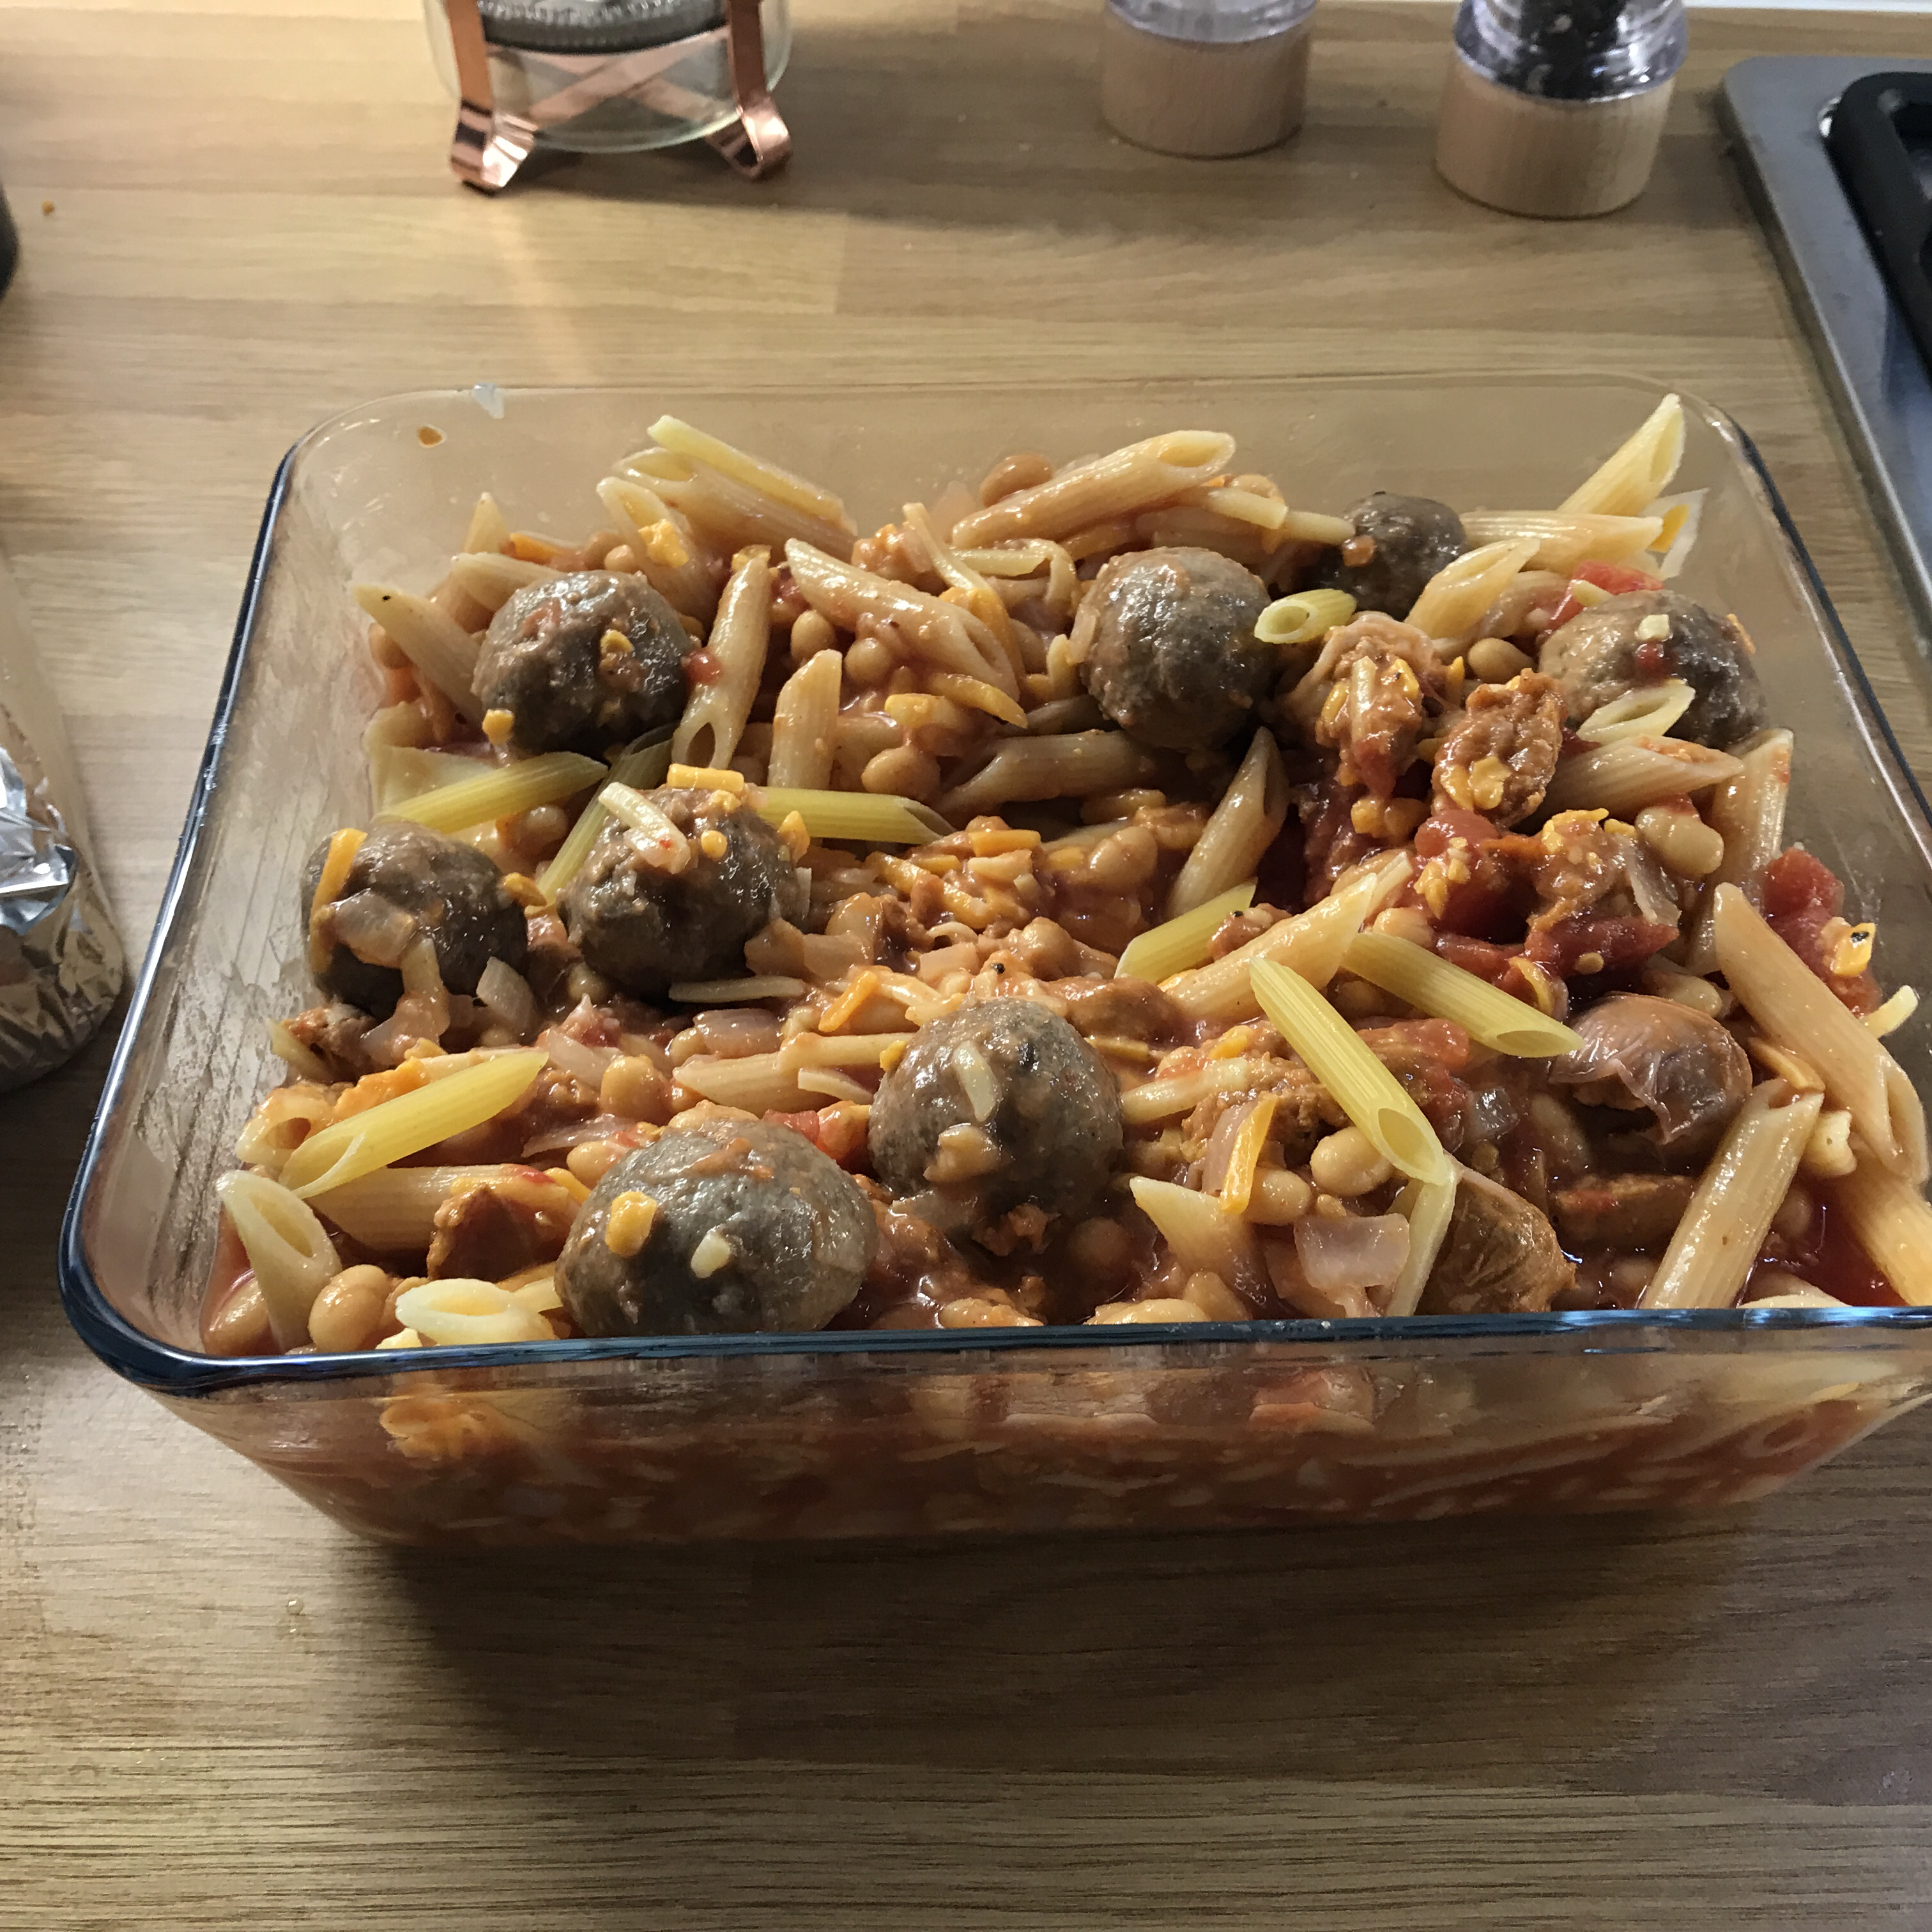 Easy Cheese-Topped Meatball Casserole Chloe Eveline Parsons-Young